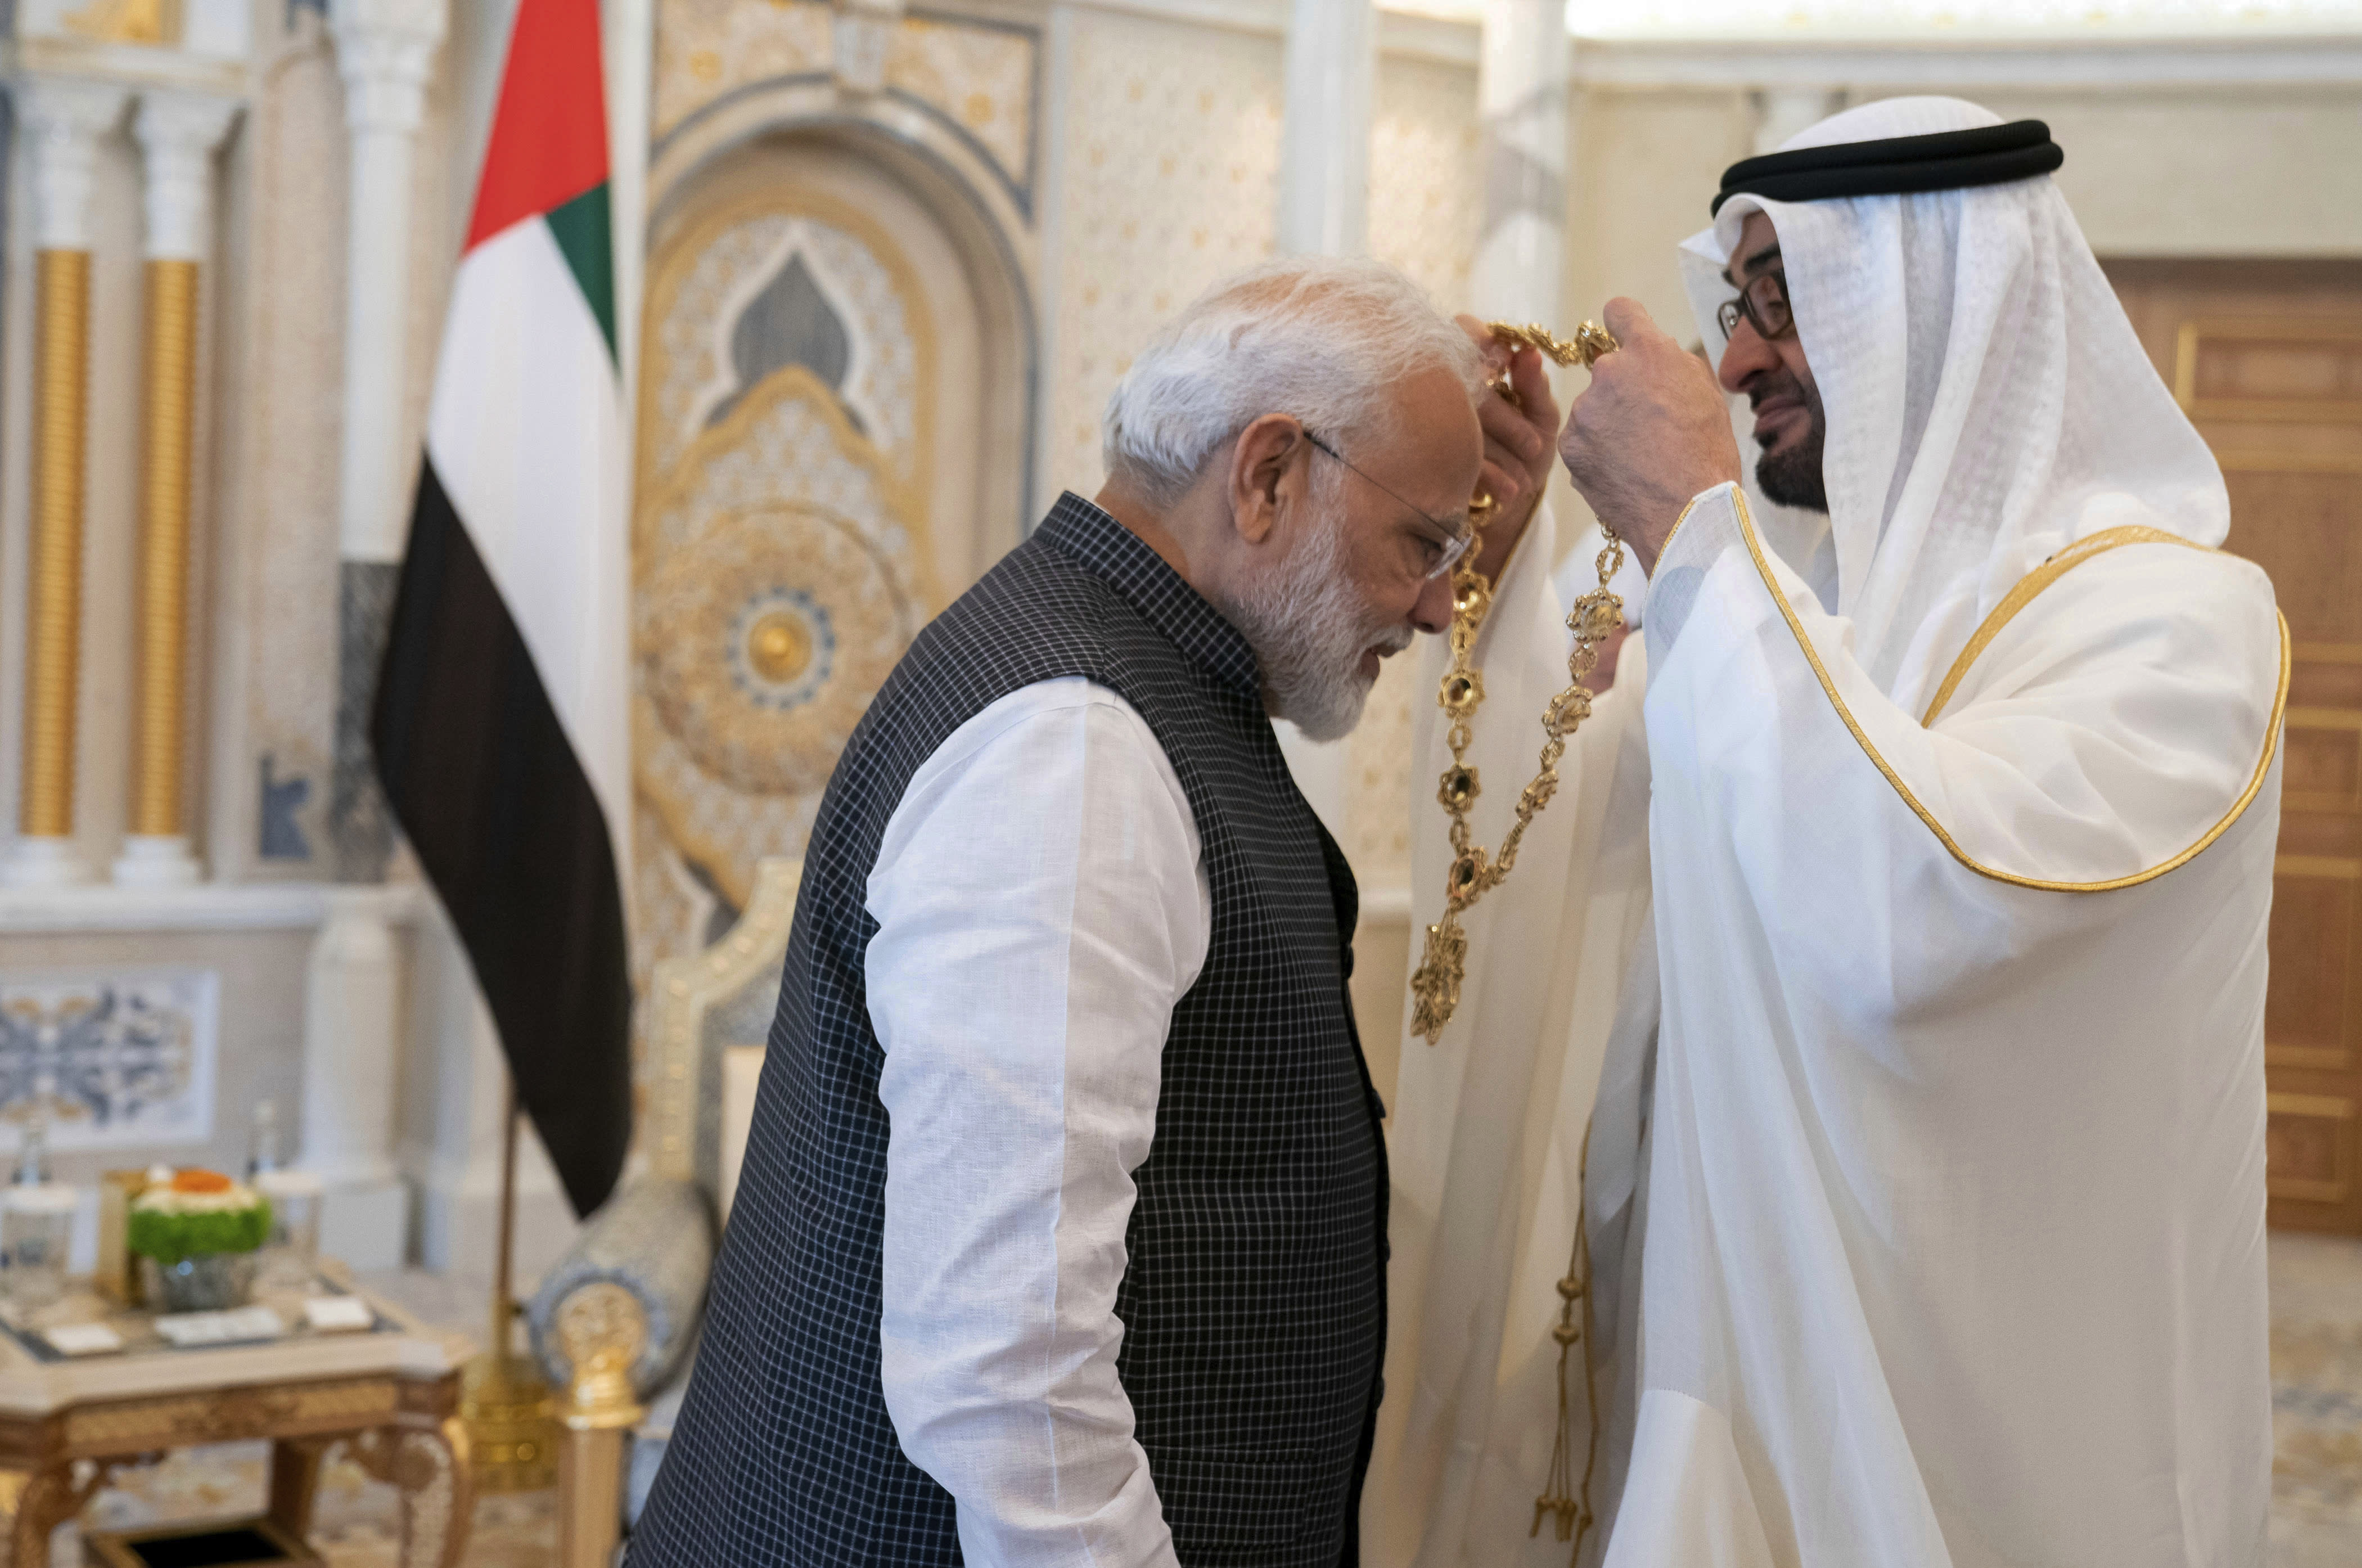 In this photograph made available by the state-run WAM news agency, Indian Prime Minister Narendra Modi, left, receives a medal during his induction to the Order of Zayed from Sheikh Mohammed bin Zayed Al Nahyan, right, in Abu Dhabi, United Arab Emirates, Saturday, Aug. 24, 2019. Modi is on a trip to both the United Arab Emirates and Bahrain, reinforcing ties between India and the Gulf Arab nations as he pursues stripping statehood from the disputed Muslim-majority region of Kashmir. (Hamad al-Kaabi - Ministry of Presidential Affairs/WAM via AP)